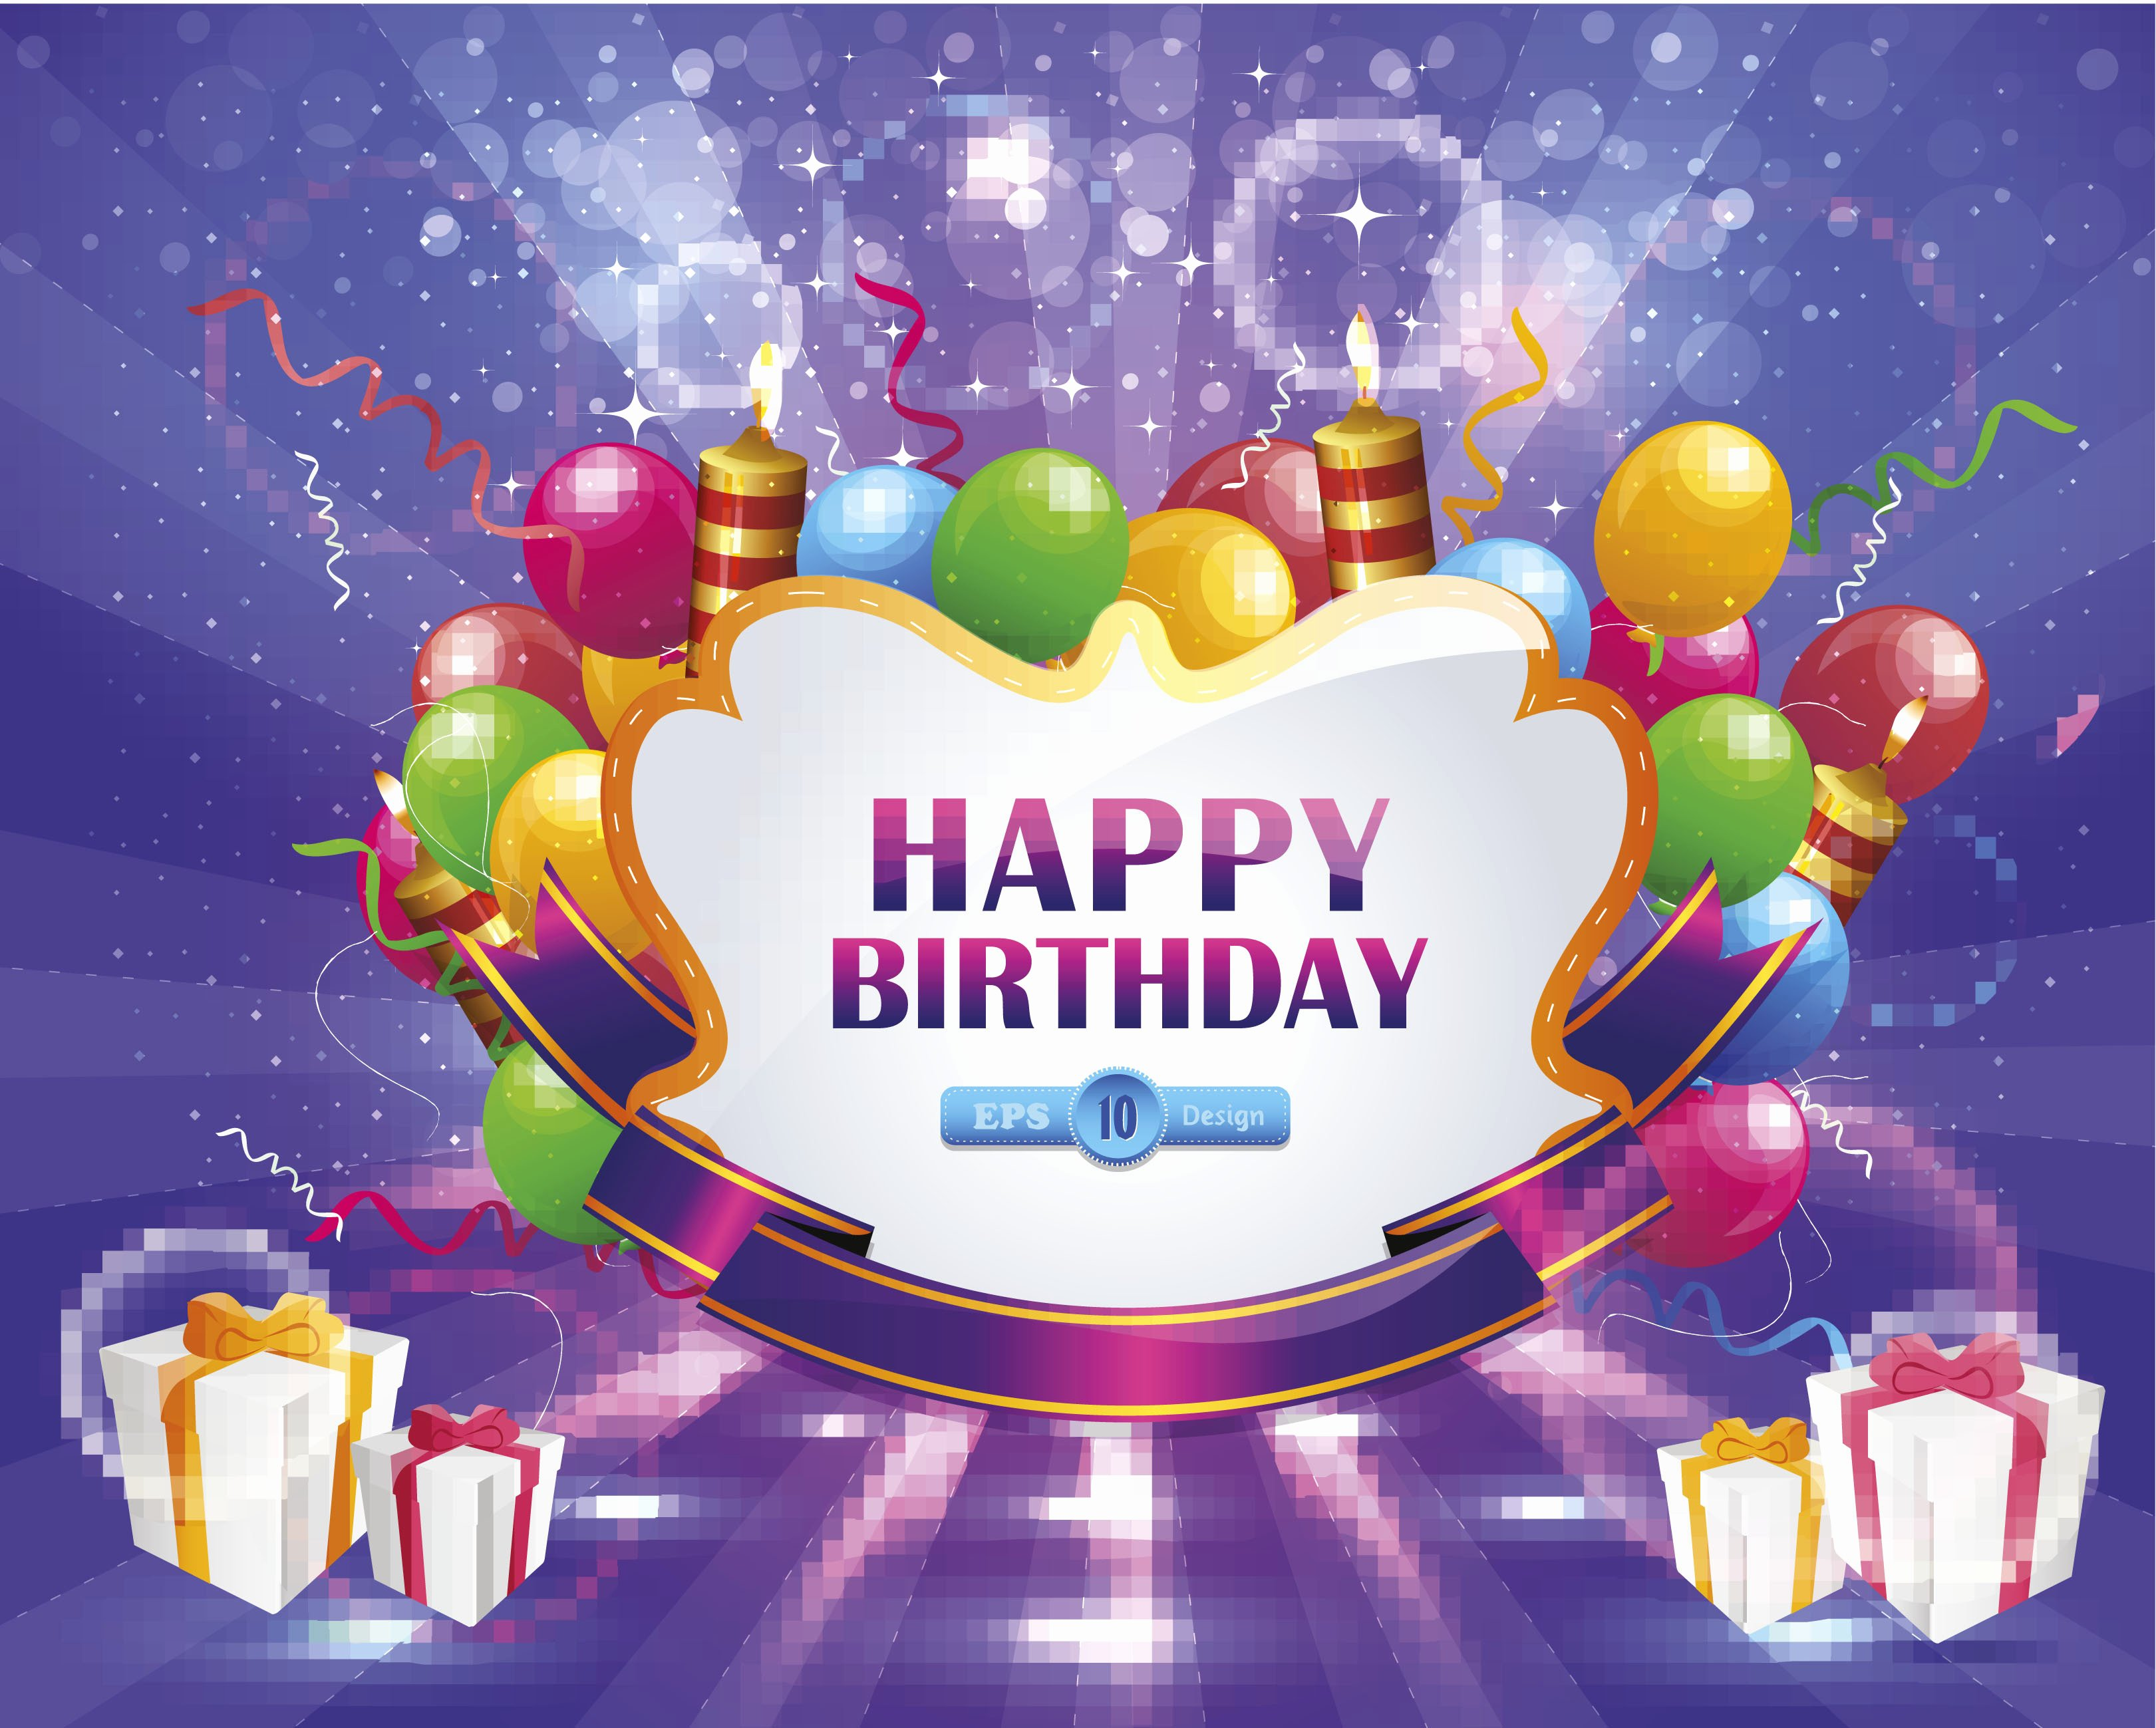 Happy Birthday Pictures Free Lovely Beautiful Picture with Congratulations for Birthday